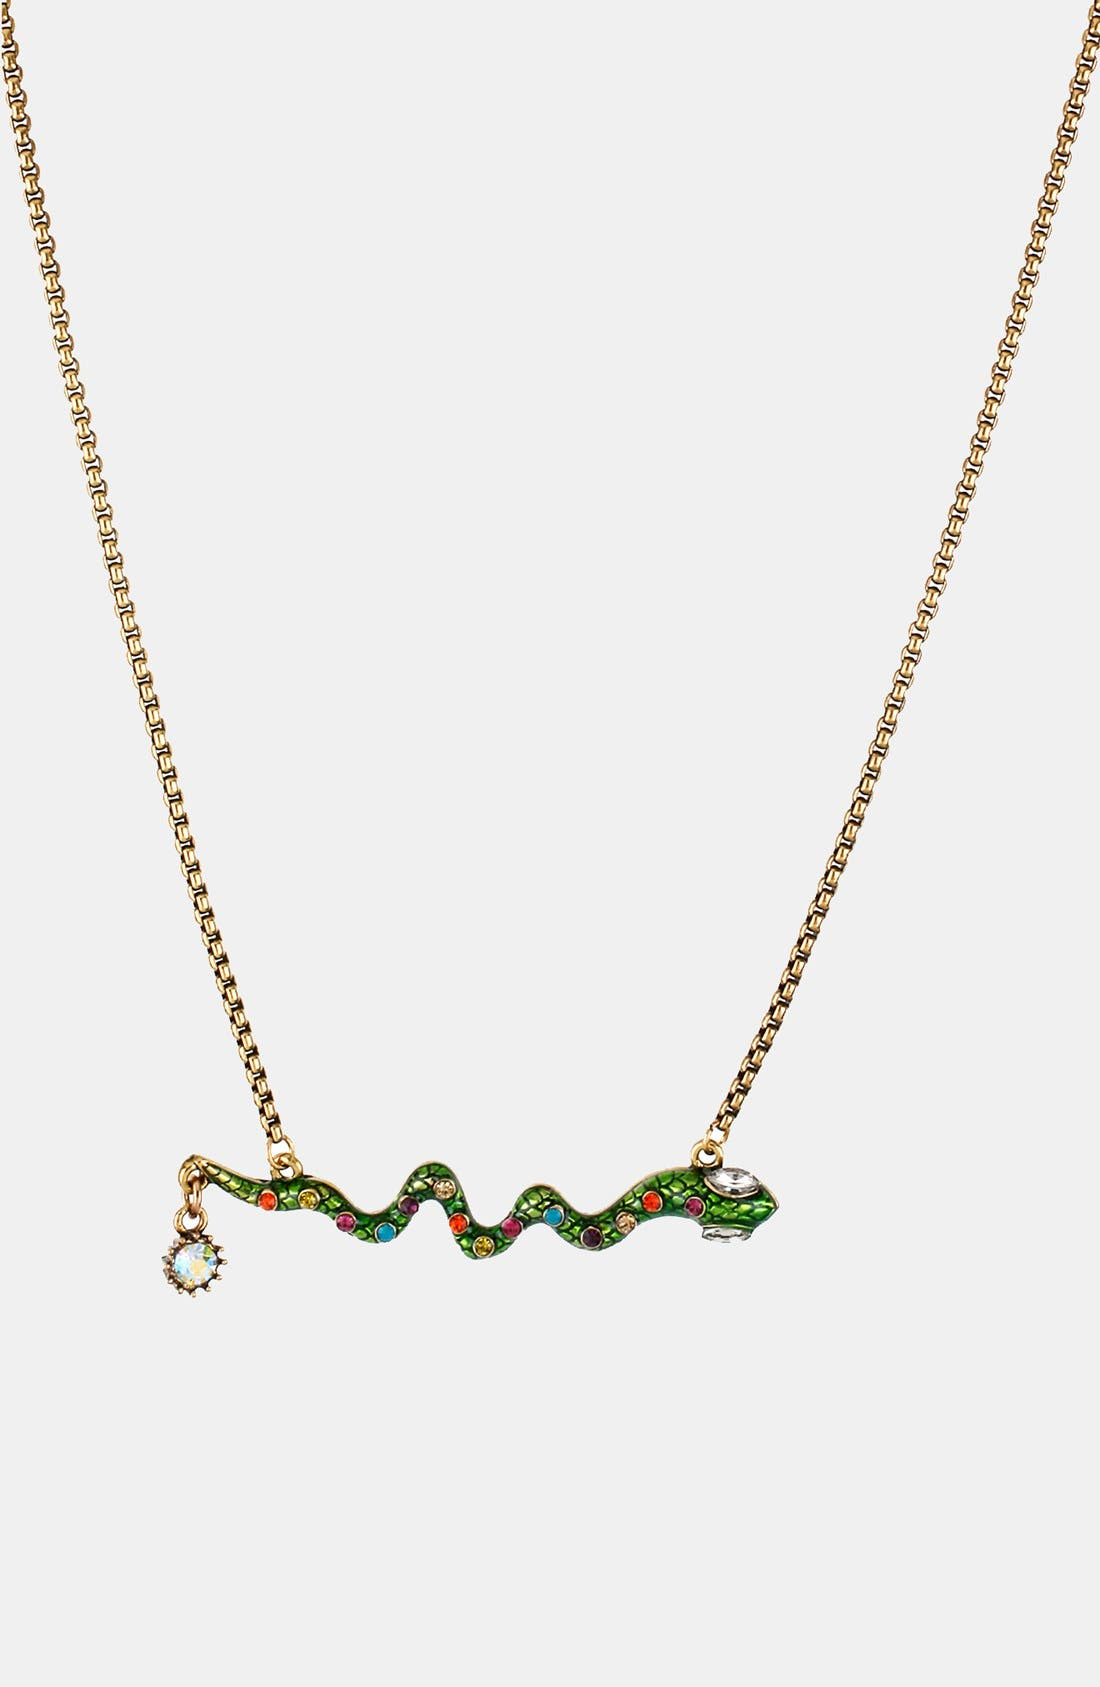 Main Image - Betsey Johnson 'St. Barts' Pendant Necklace